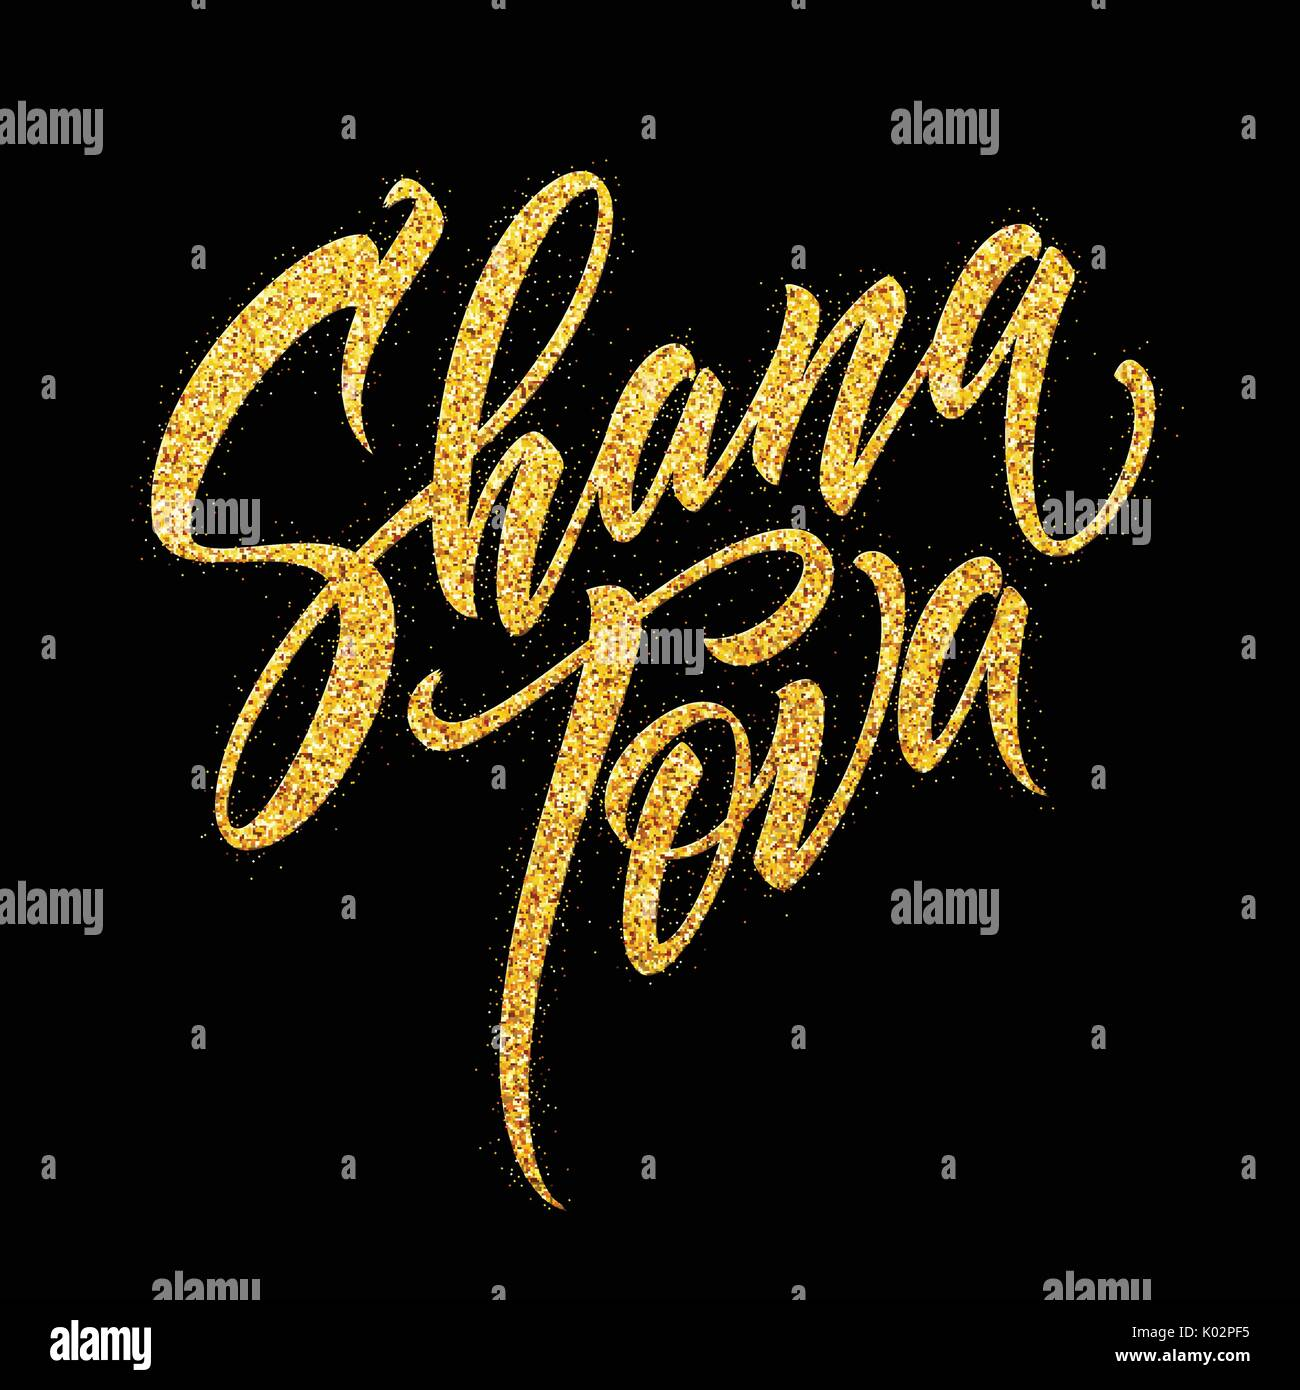 Rosh hashanah jewish new year greeting card text shana tova rosh hashanah jewish new year greeting card text shana tova golden background vector illustration kristyandbryce Choice Image